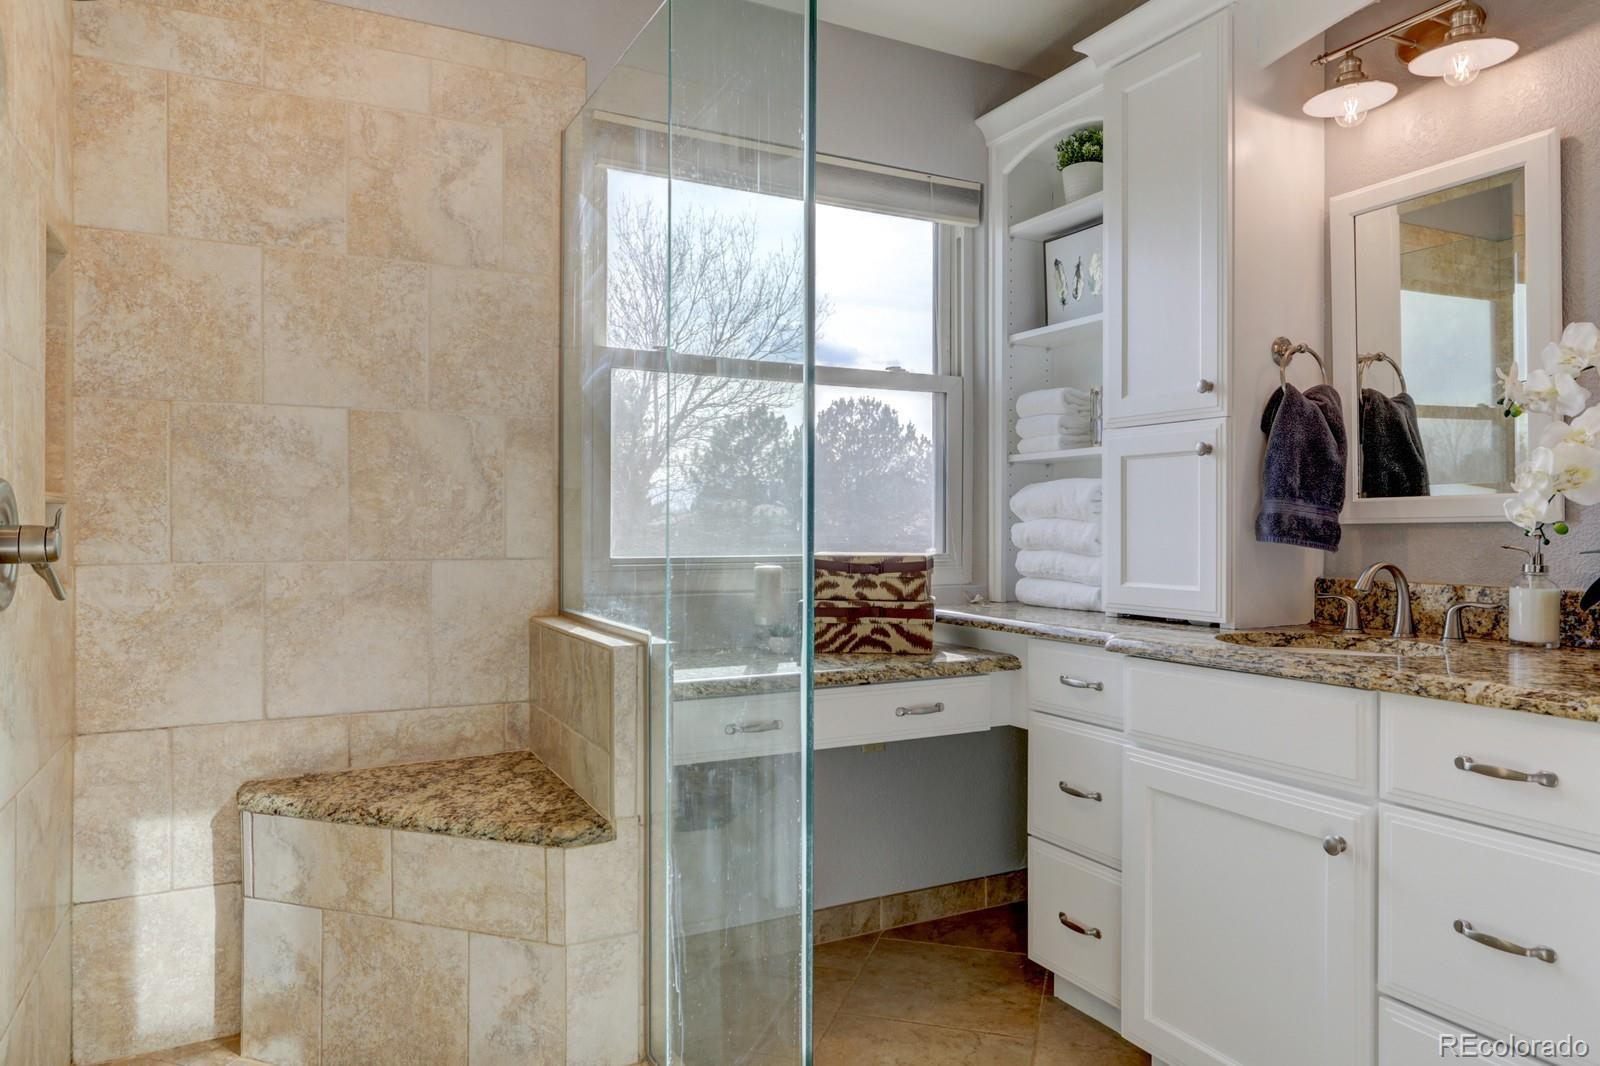 MLS# 3110413 - 18 - 9489 Wolfe Court, Highlands Ranch, CO 80129